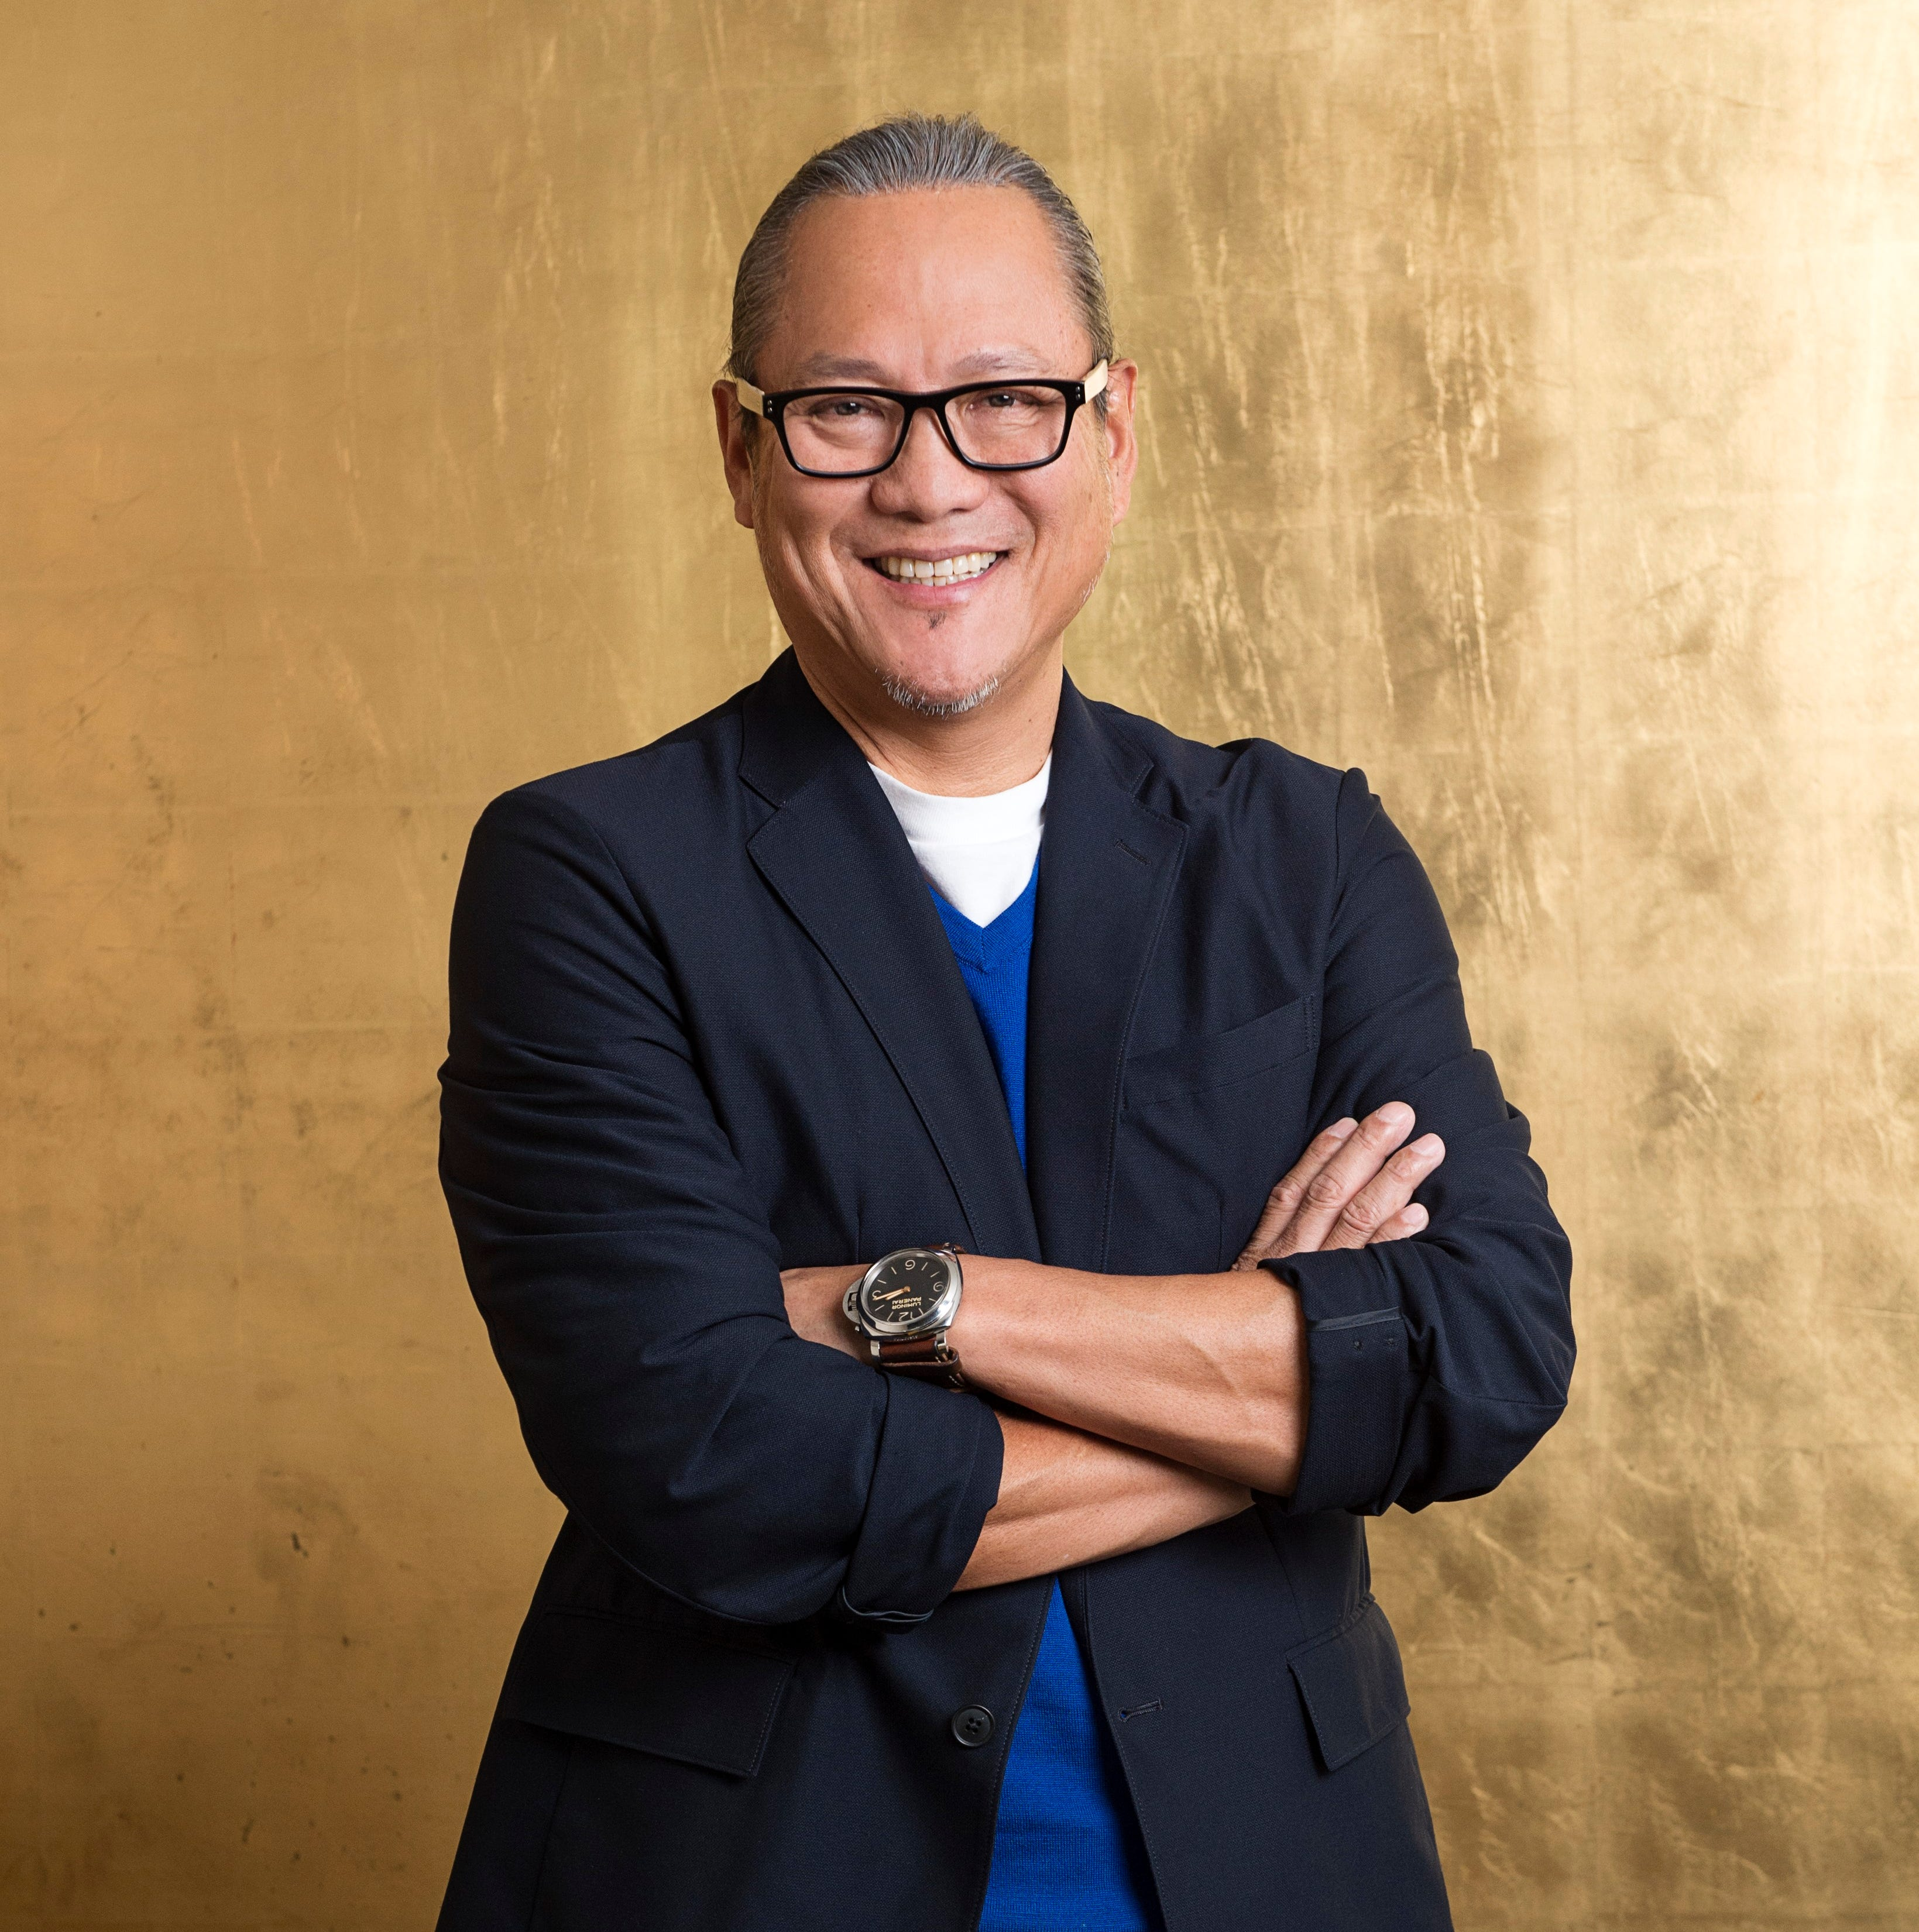 Iron Chef Masaharu Morimoto to host cooking demo at Mitsuwa Marketplace in Edgewater